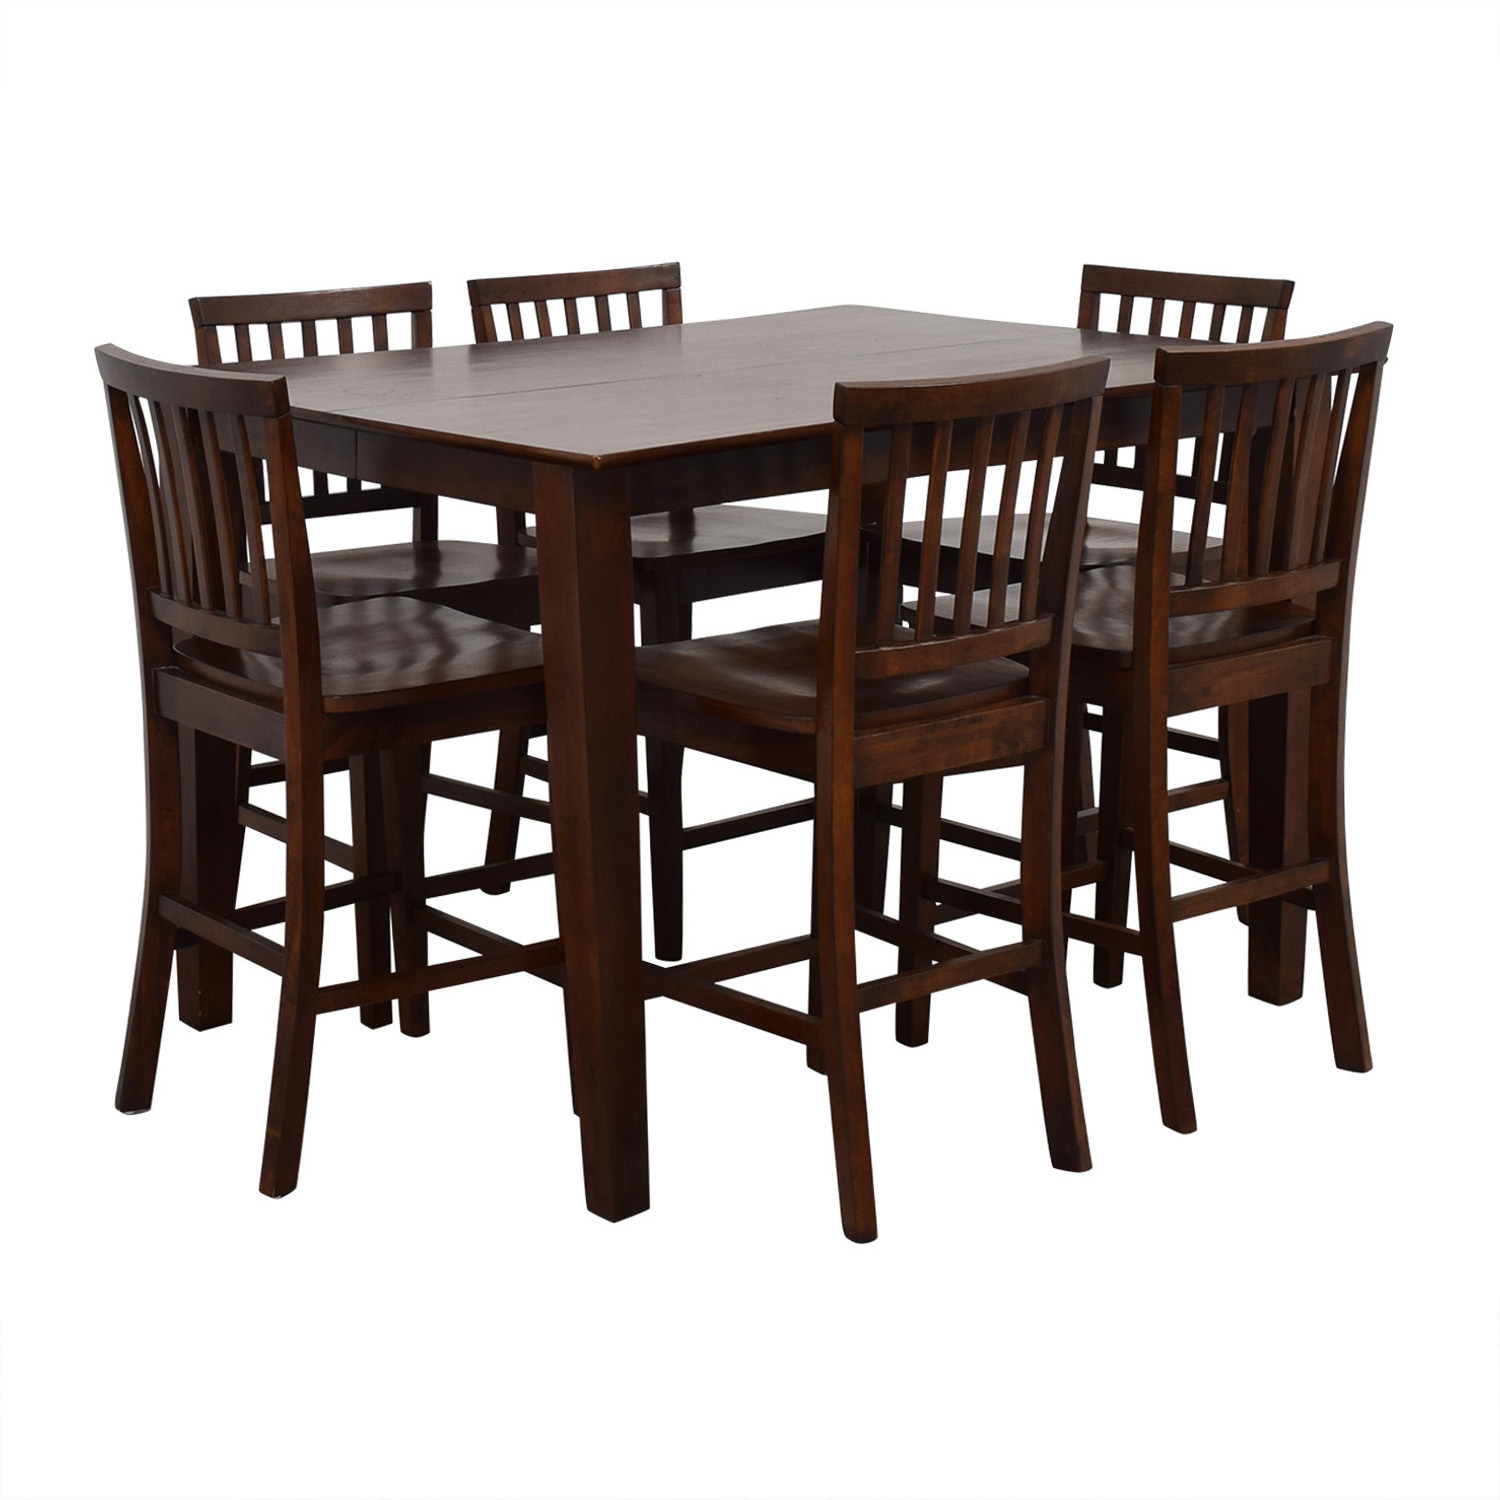 Bob's Discount Furniture Bob's Discount Furniture Extendable Dining Set second hand